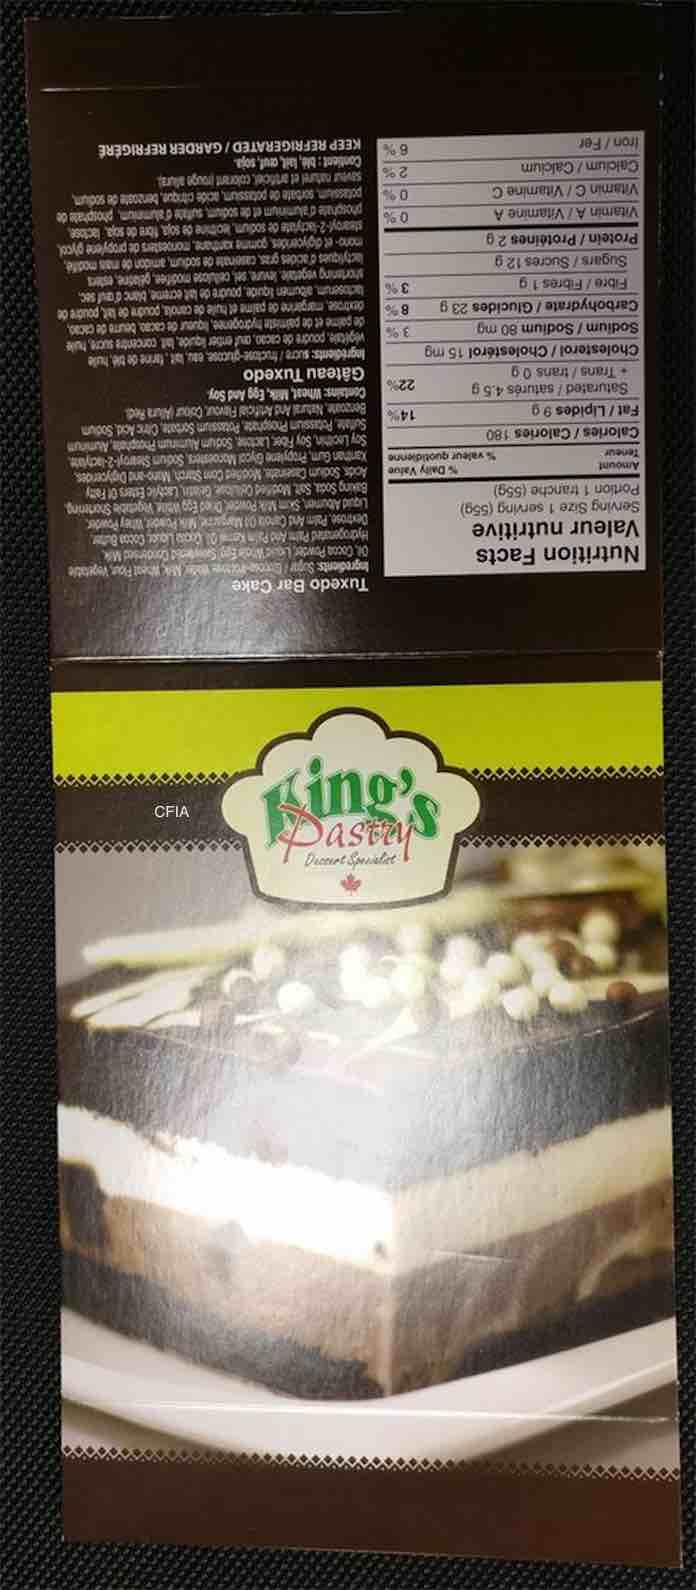 King's Pastry Recall